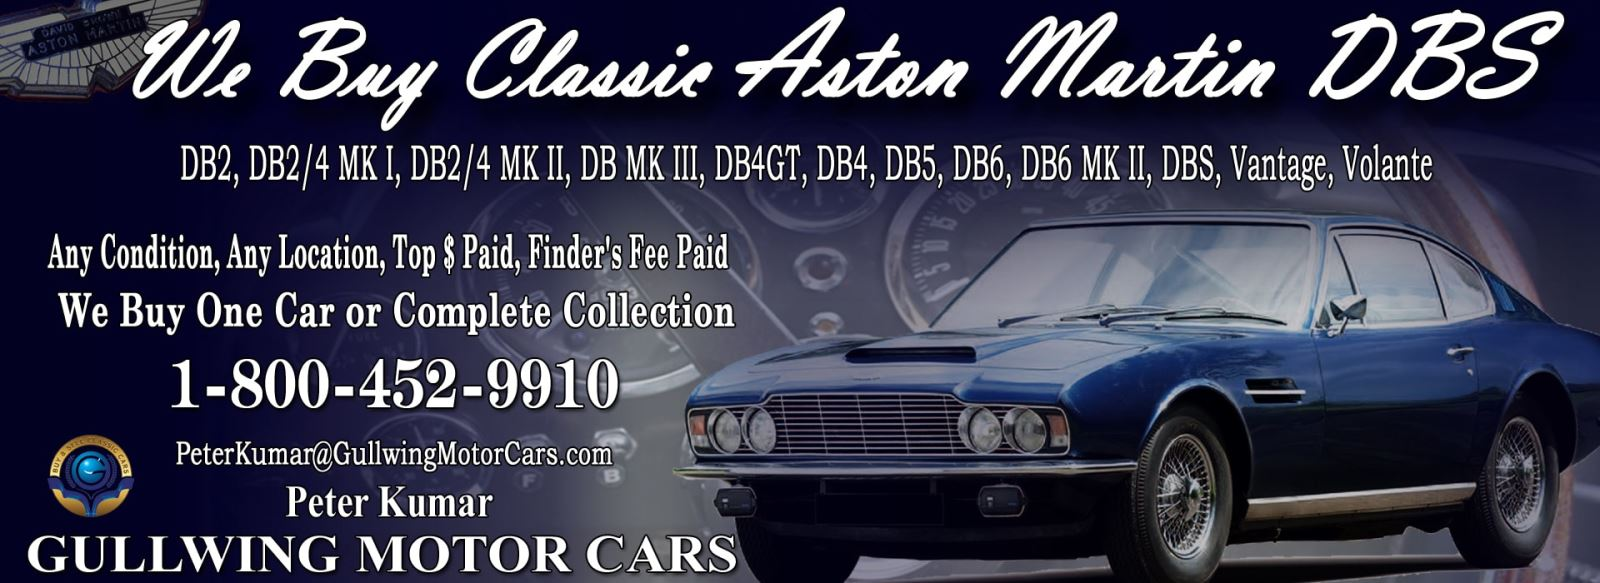 Classic Aston Martin DBS for sale, we buy vintage Aston Martin DBS. Call Peter Kumar. Gullwing Motor